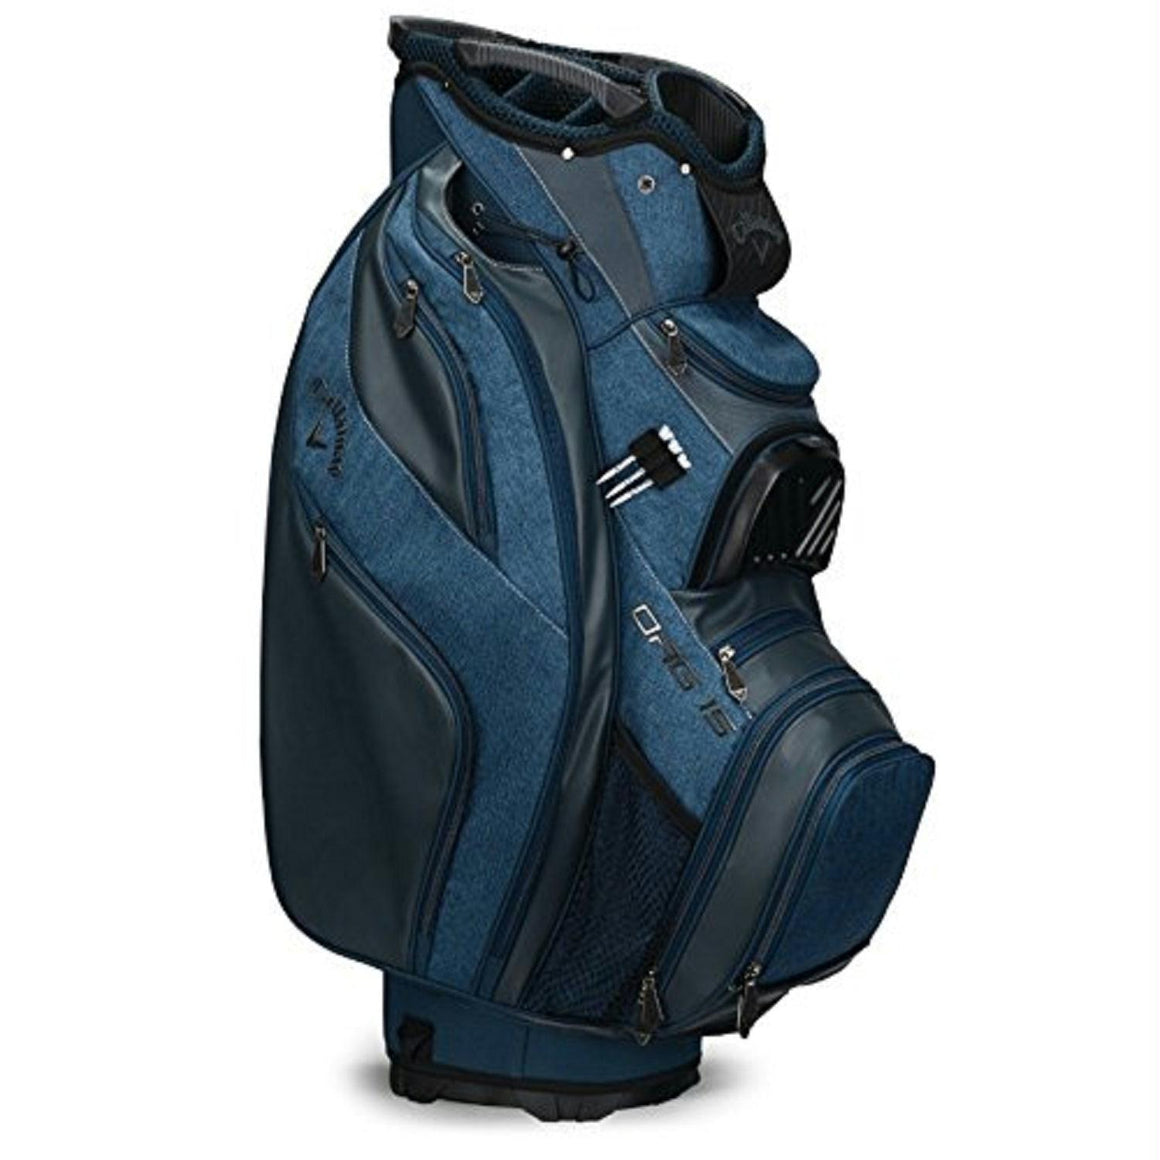 Callaway ORG 15 Cart Bag - Titanium-Navy-White